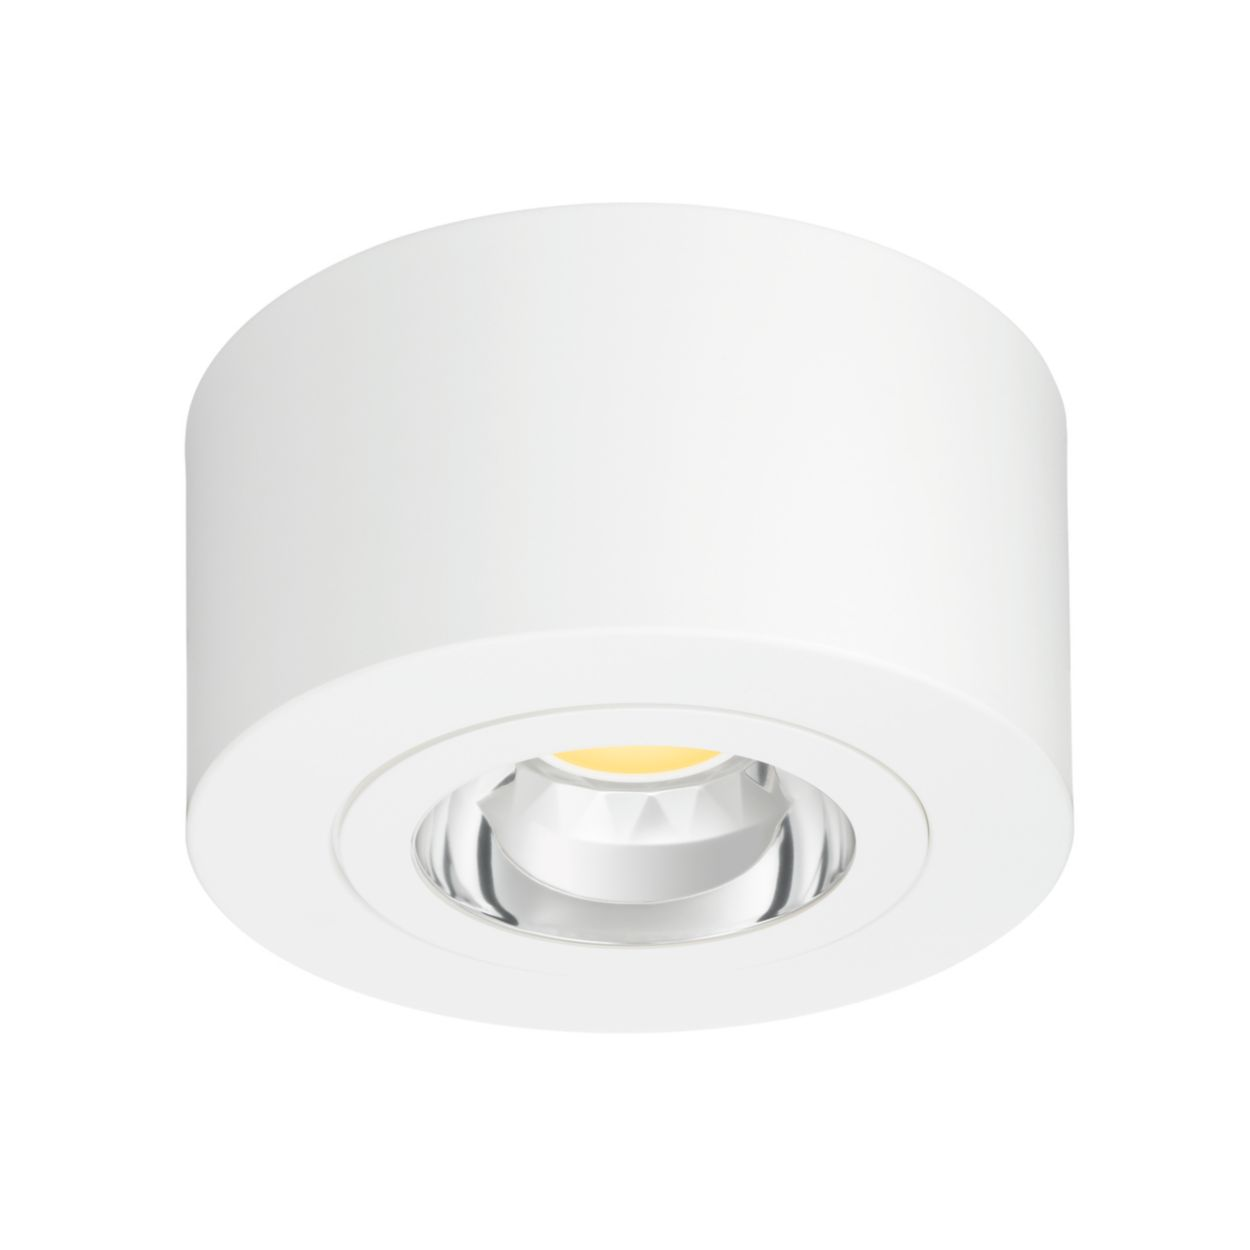 LuxSpace Surface-mounted – top-quality, energy-saving LED light